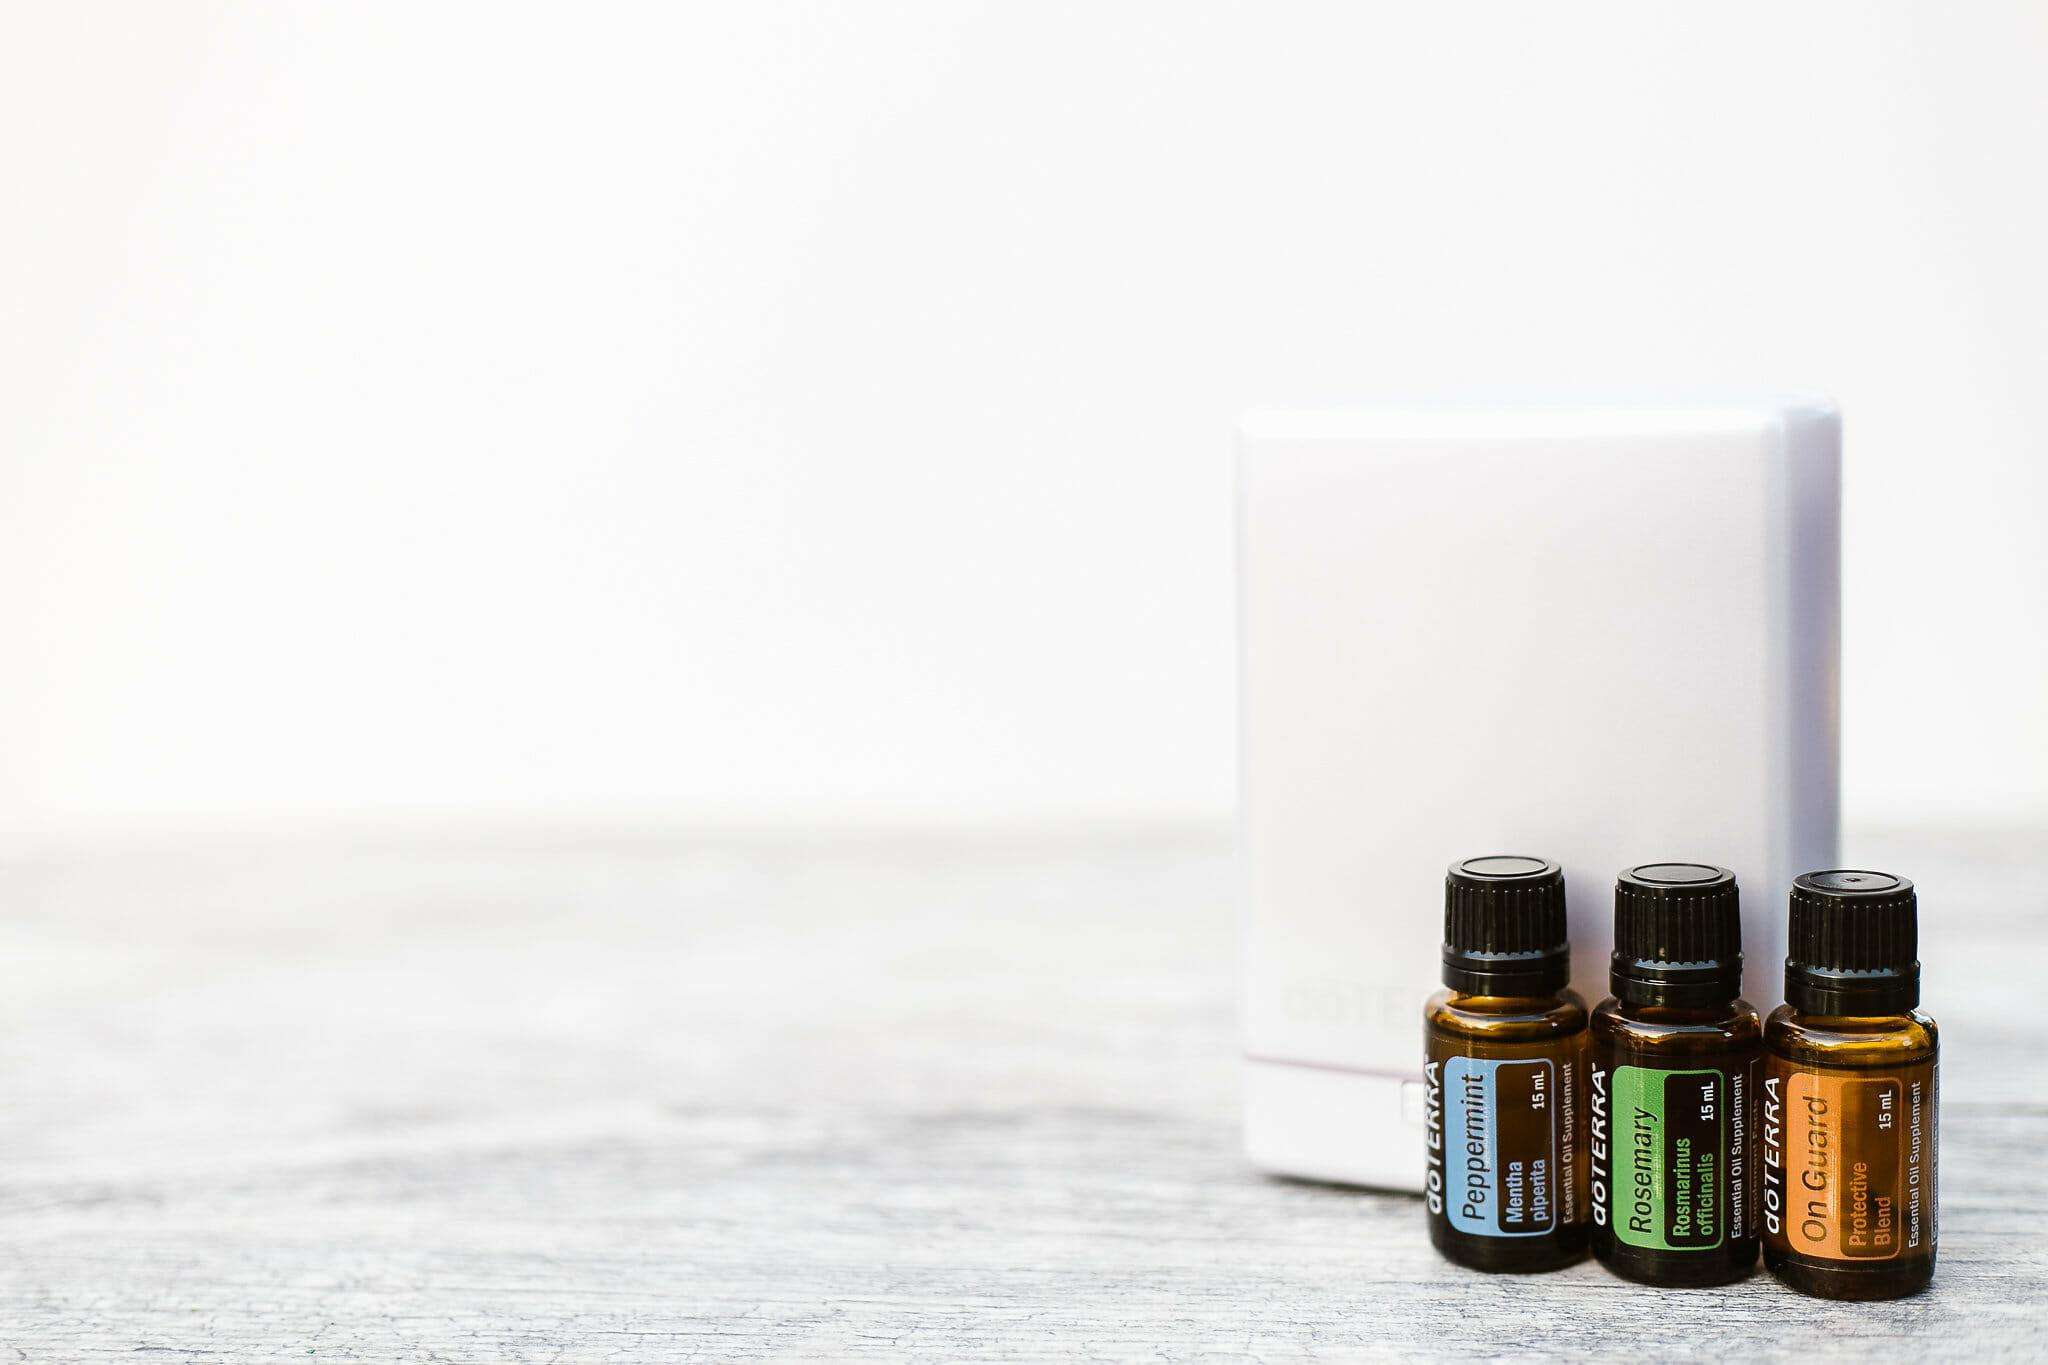 Peppermint-Single_-Rosemary-Single_On-Guard-Protective-Blend_AromaLite-Diffuser_White-Background